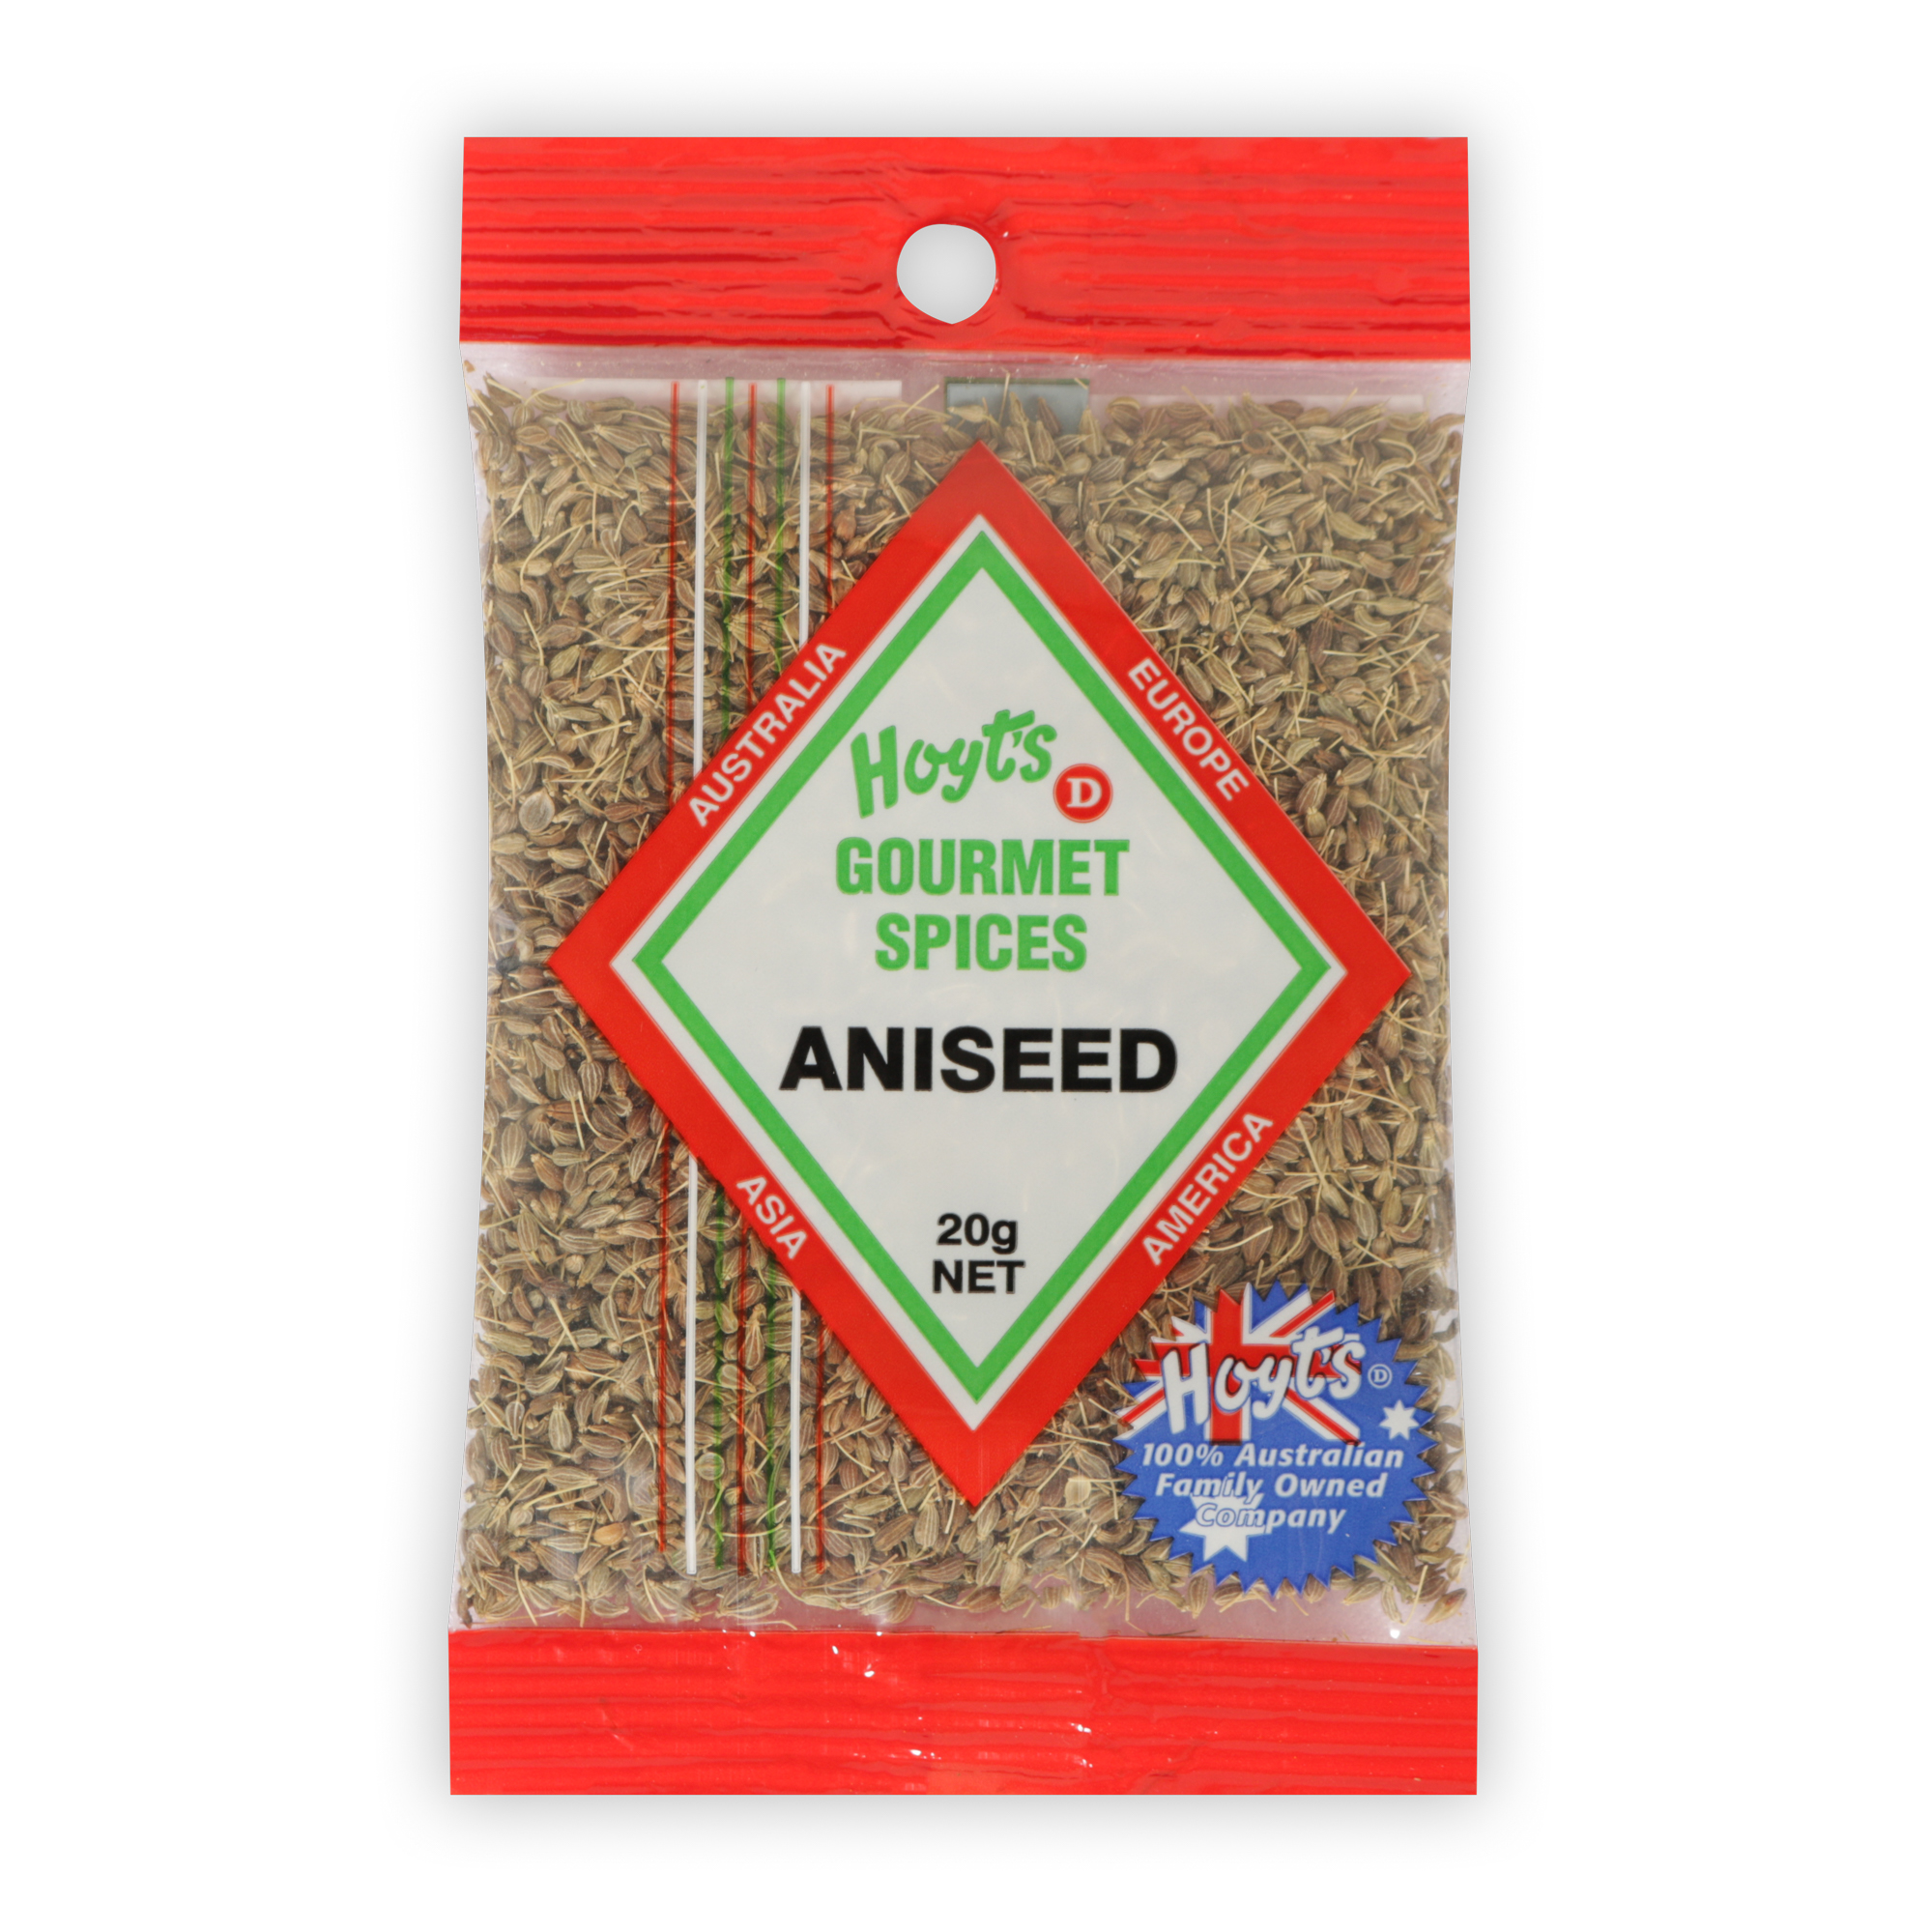 Gourmet Aniseed 20g - 9300725010027 1